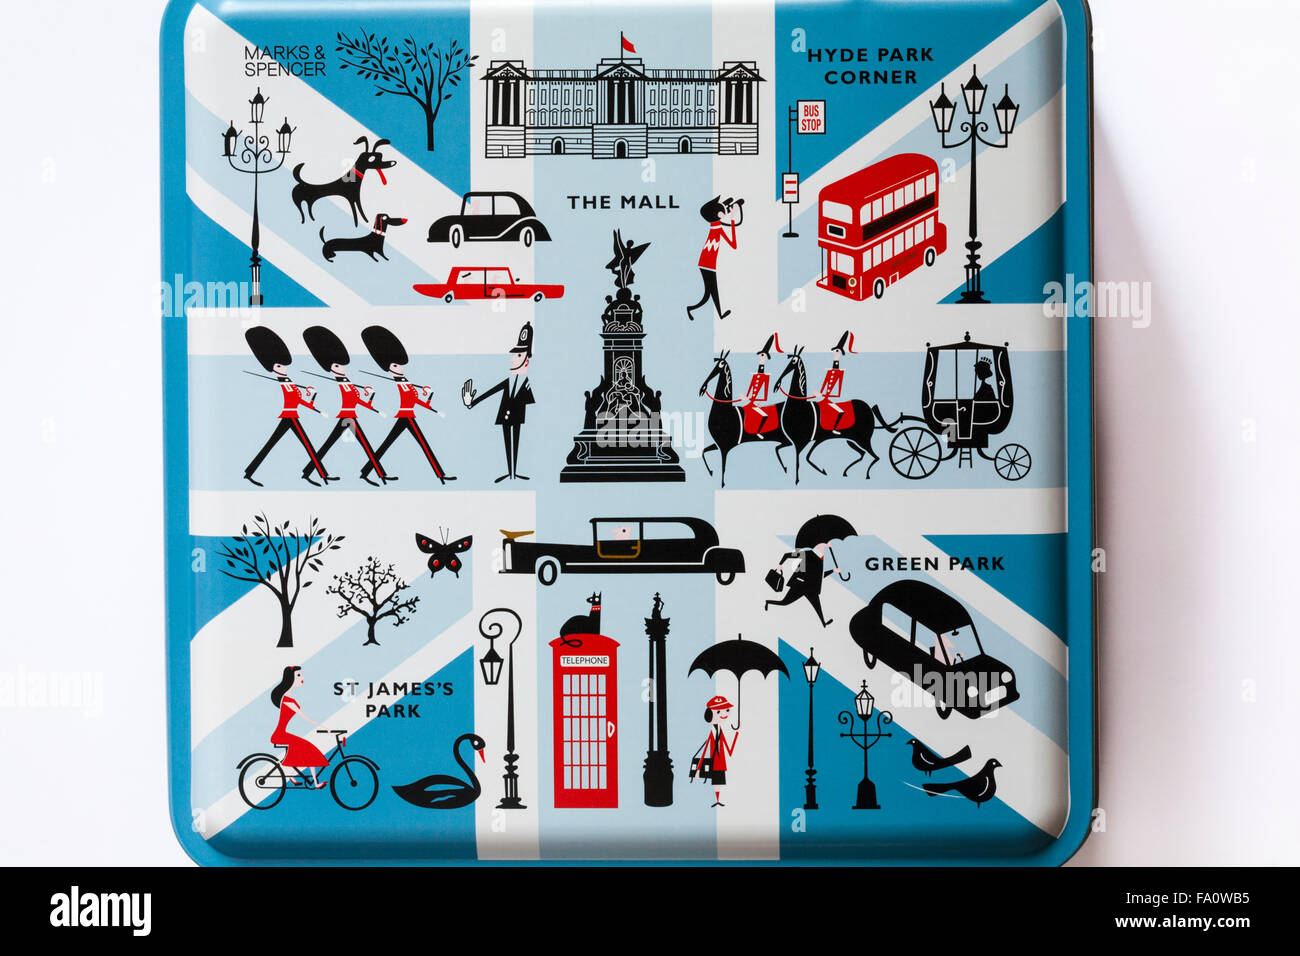 Marks & Spencer Decorative biscuit tin on London themes isolated on white background - Stock Image